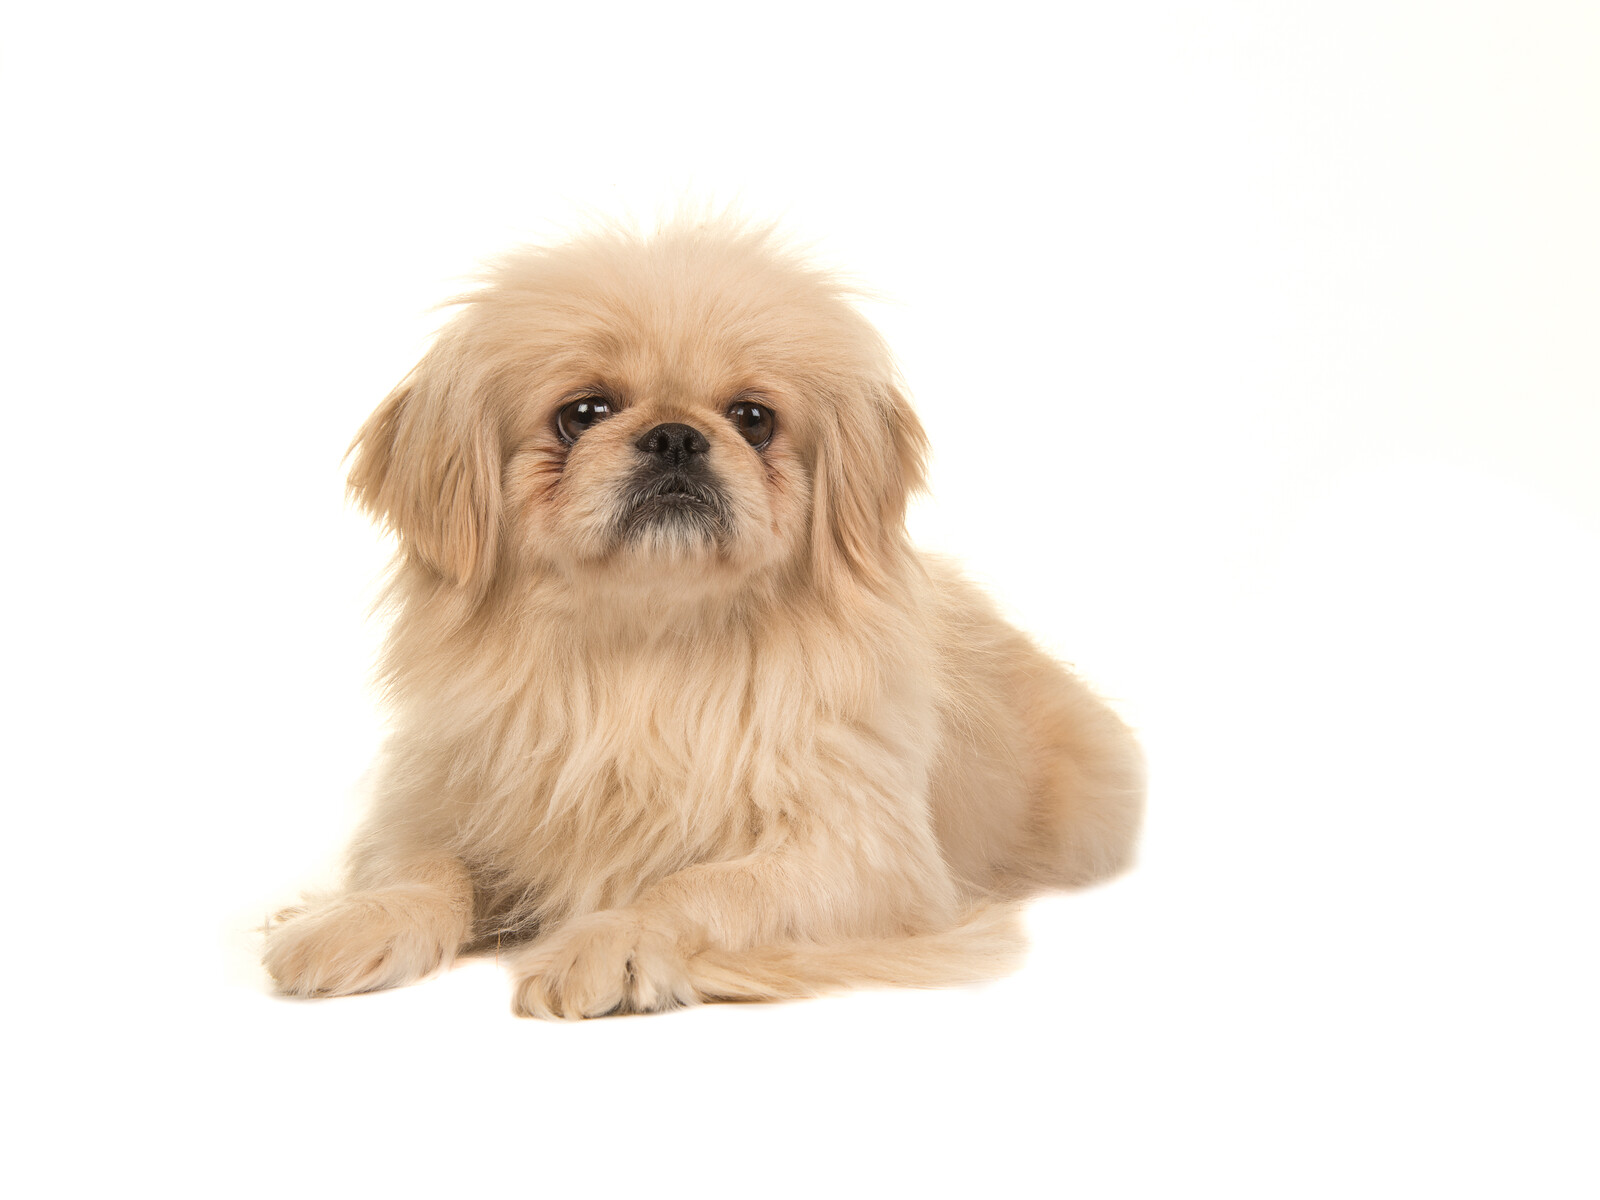 Buff Colored Tibetan Spaniel laying down with a white background